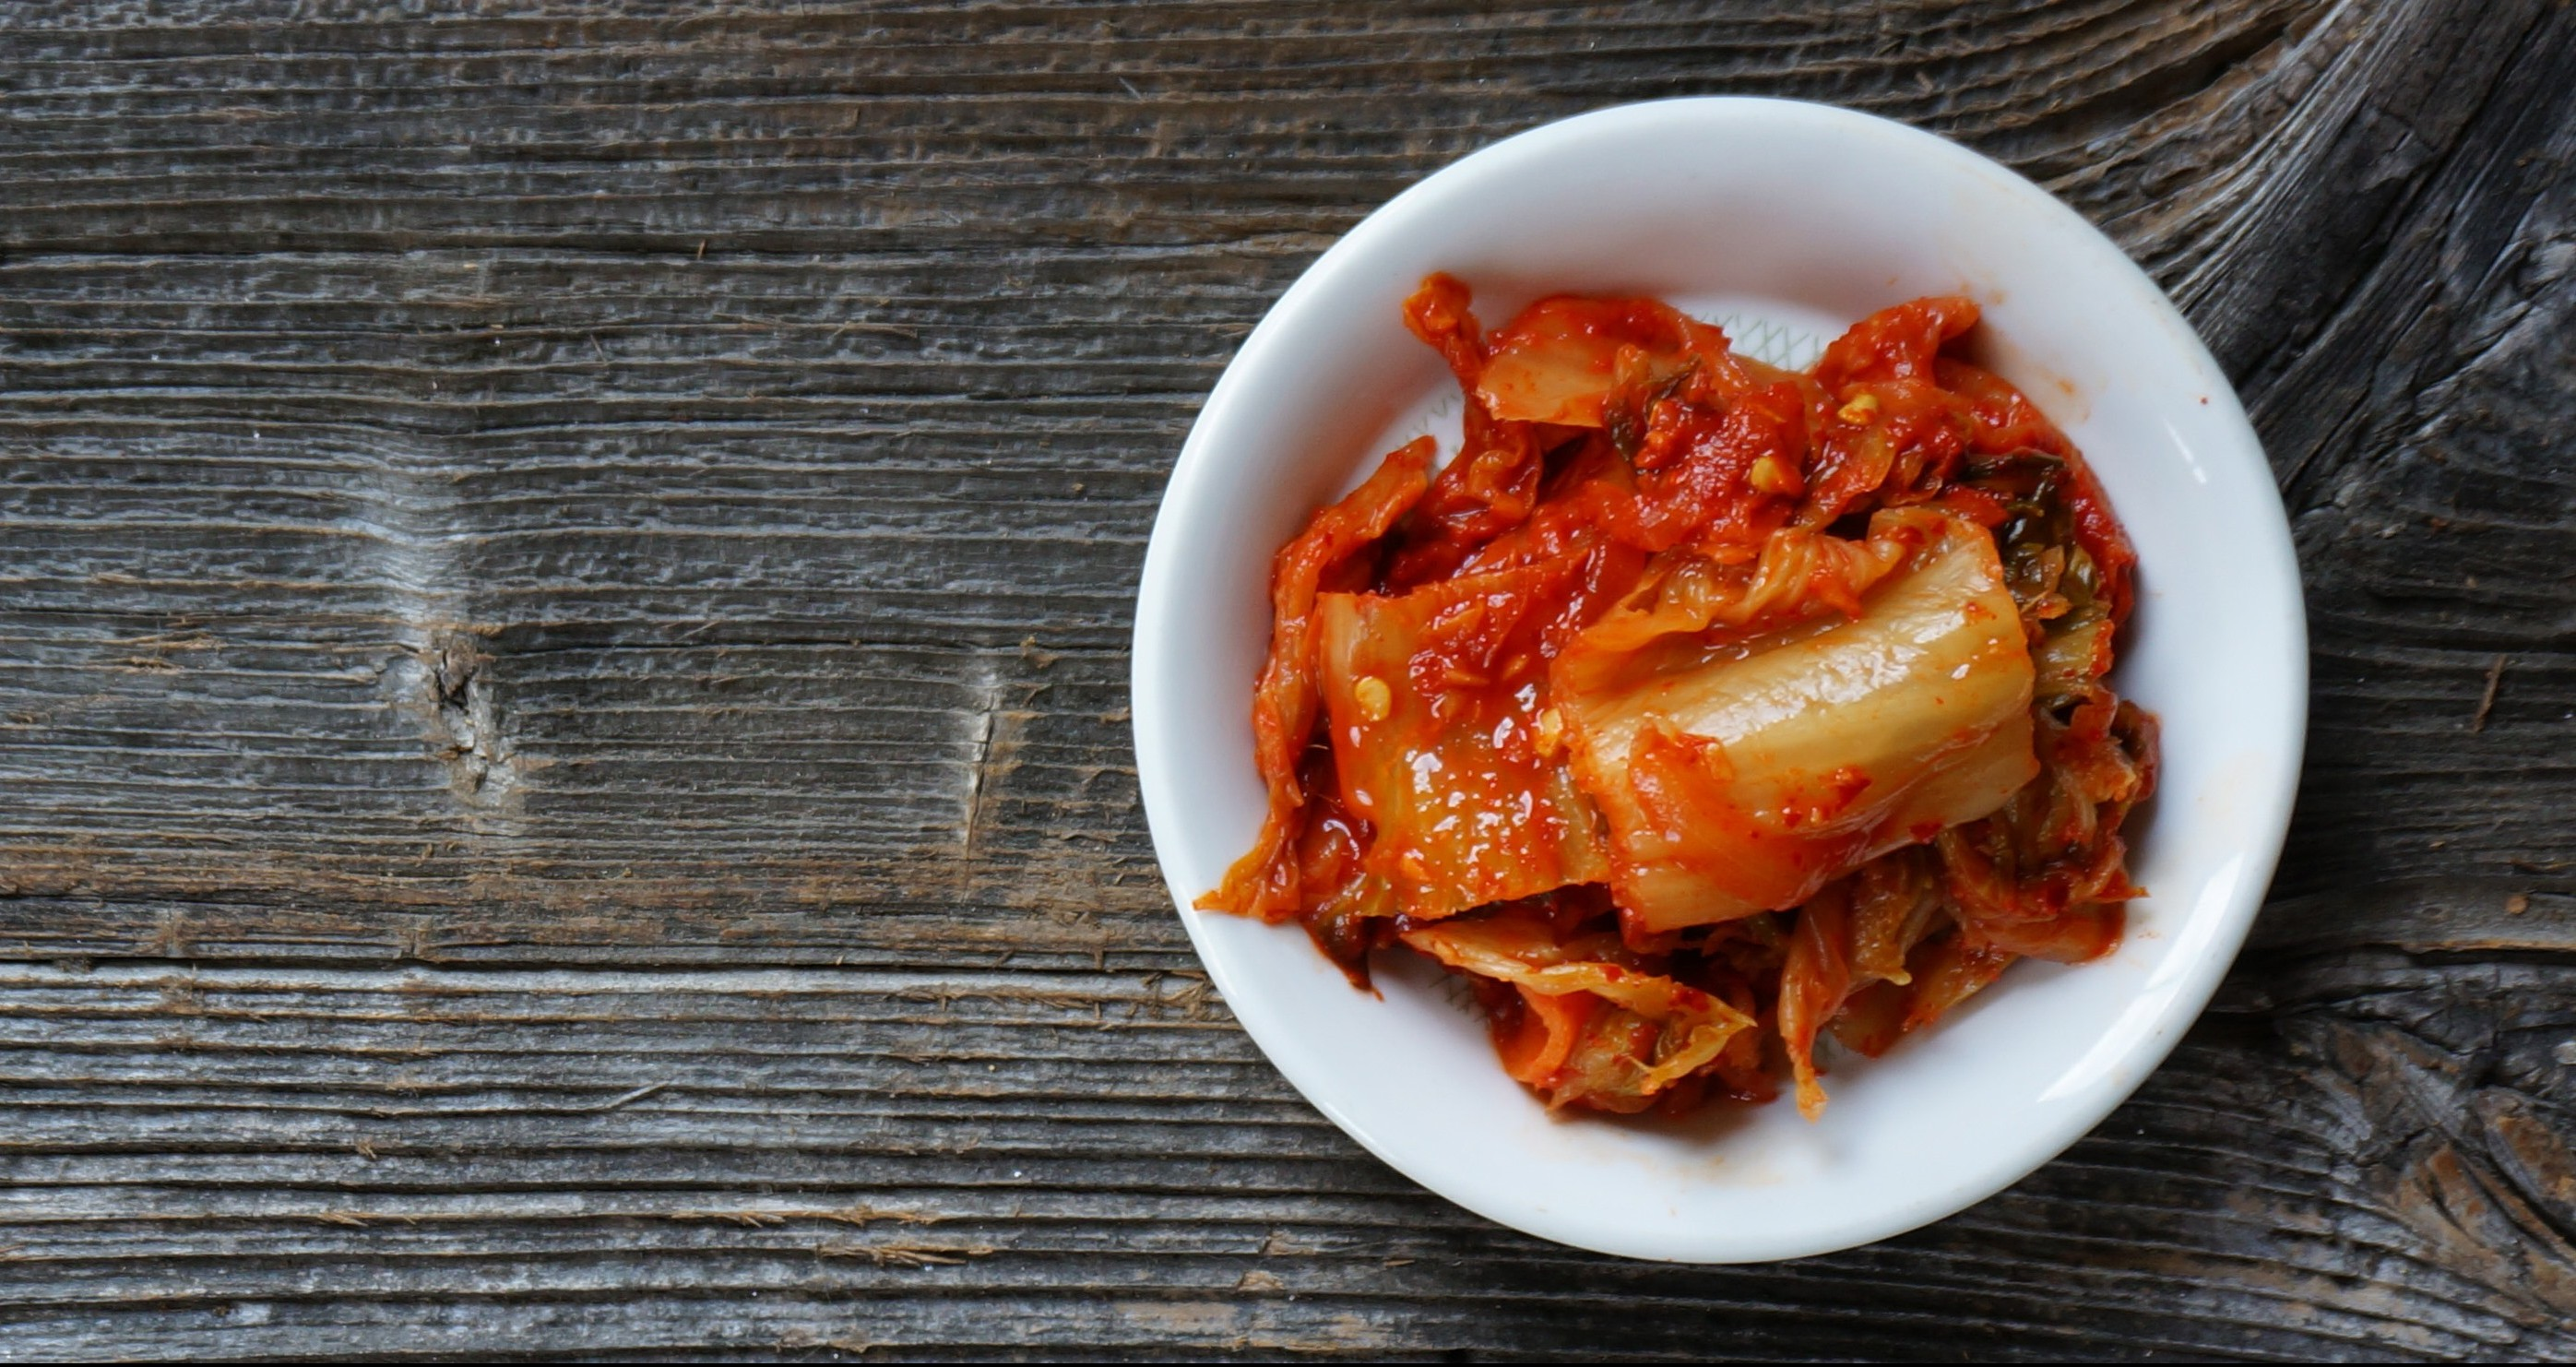 The effects of red pepper powder on kimchi fermentation ...